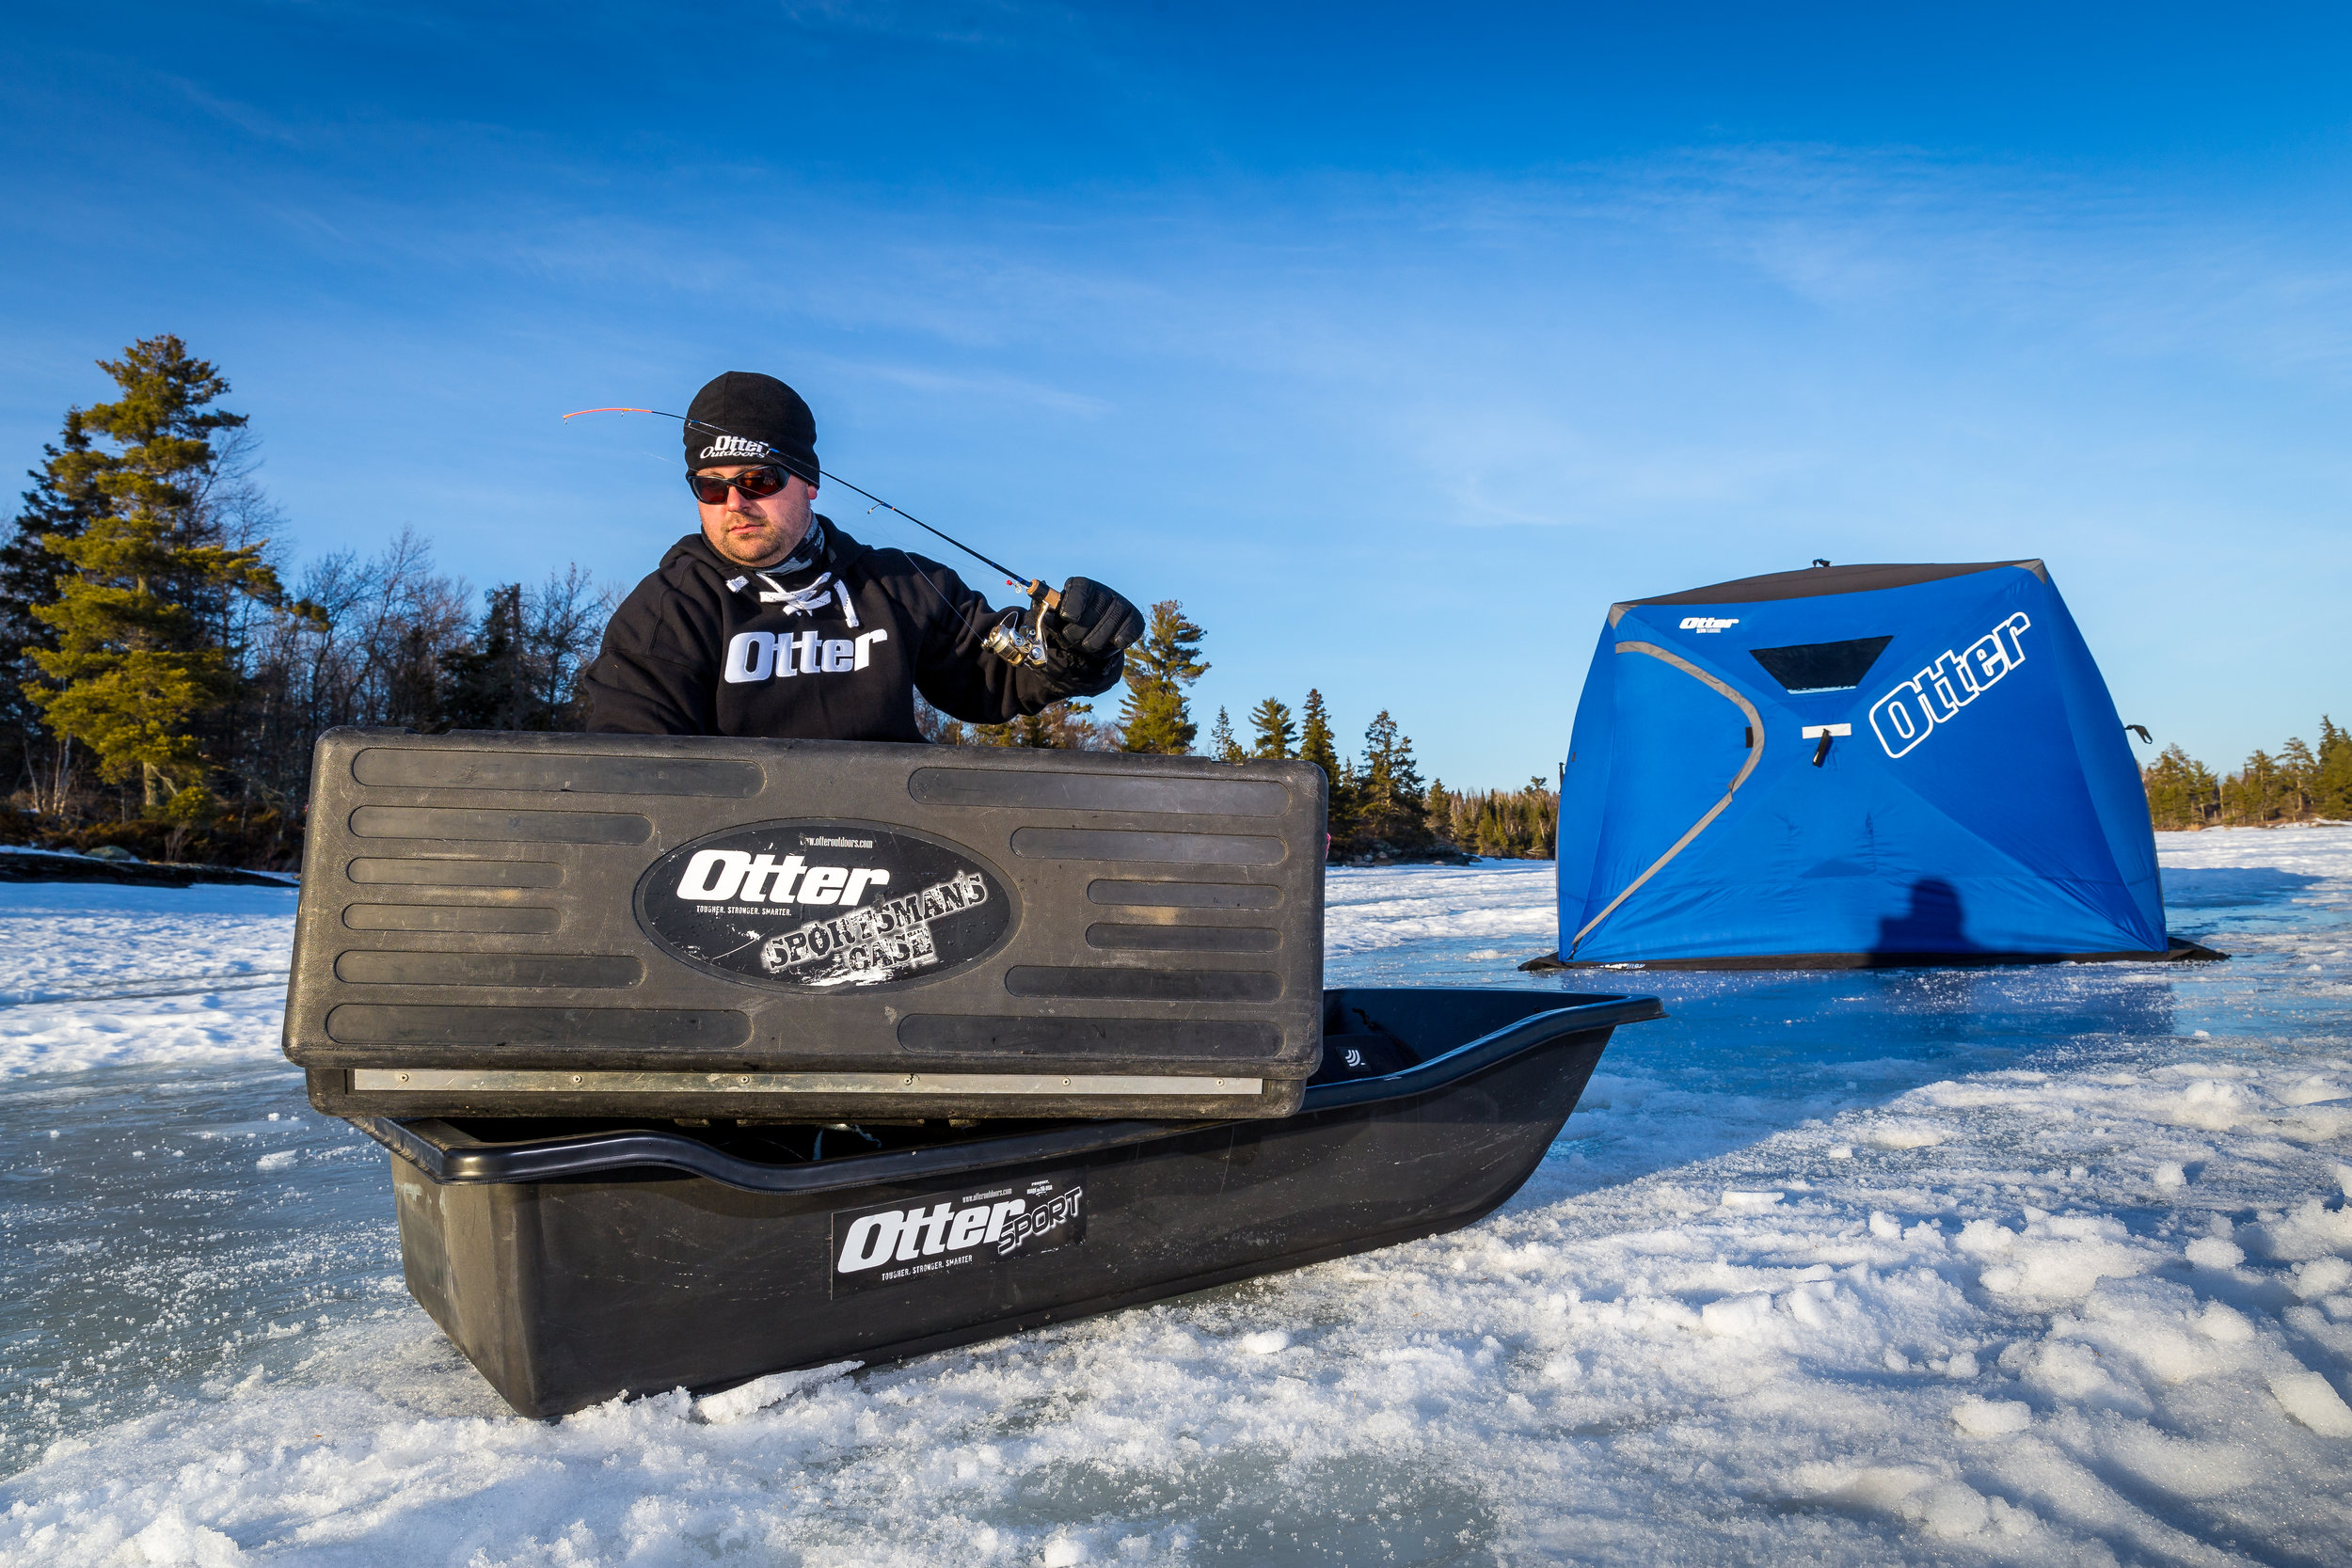 Photo Credit - Ben Larson - In-Depth Media Productions  Featured:   Otter Sport Sled    Otter Sportsmans Case    Otter XTH Lodge Hub